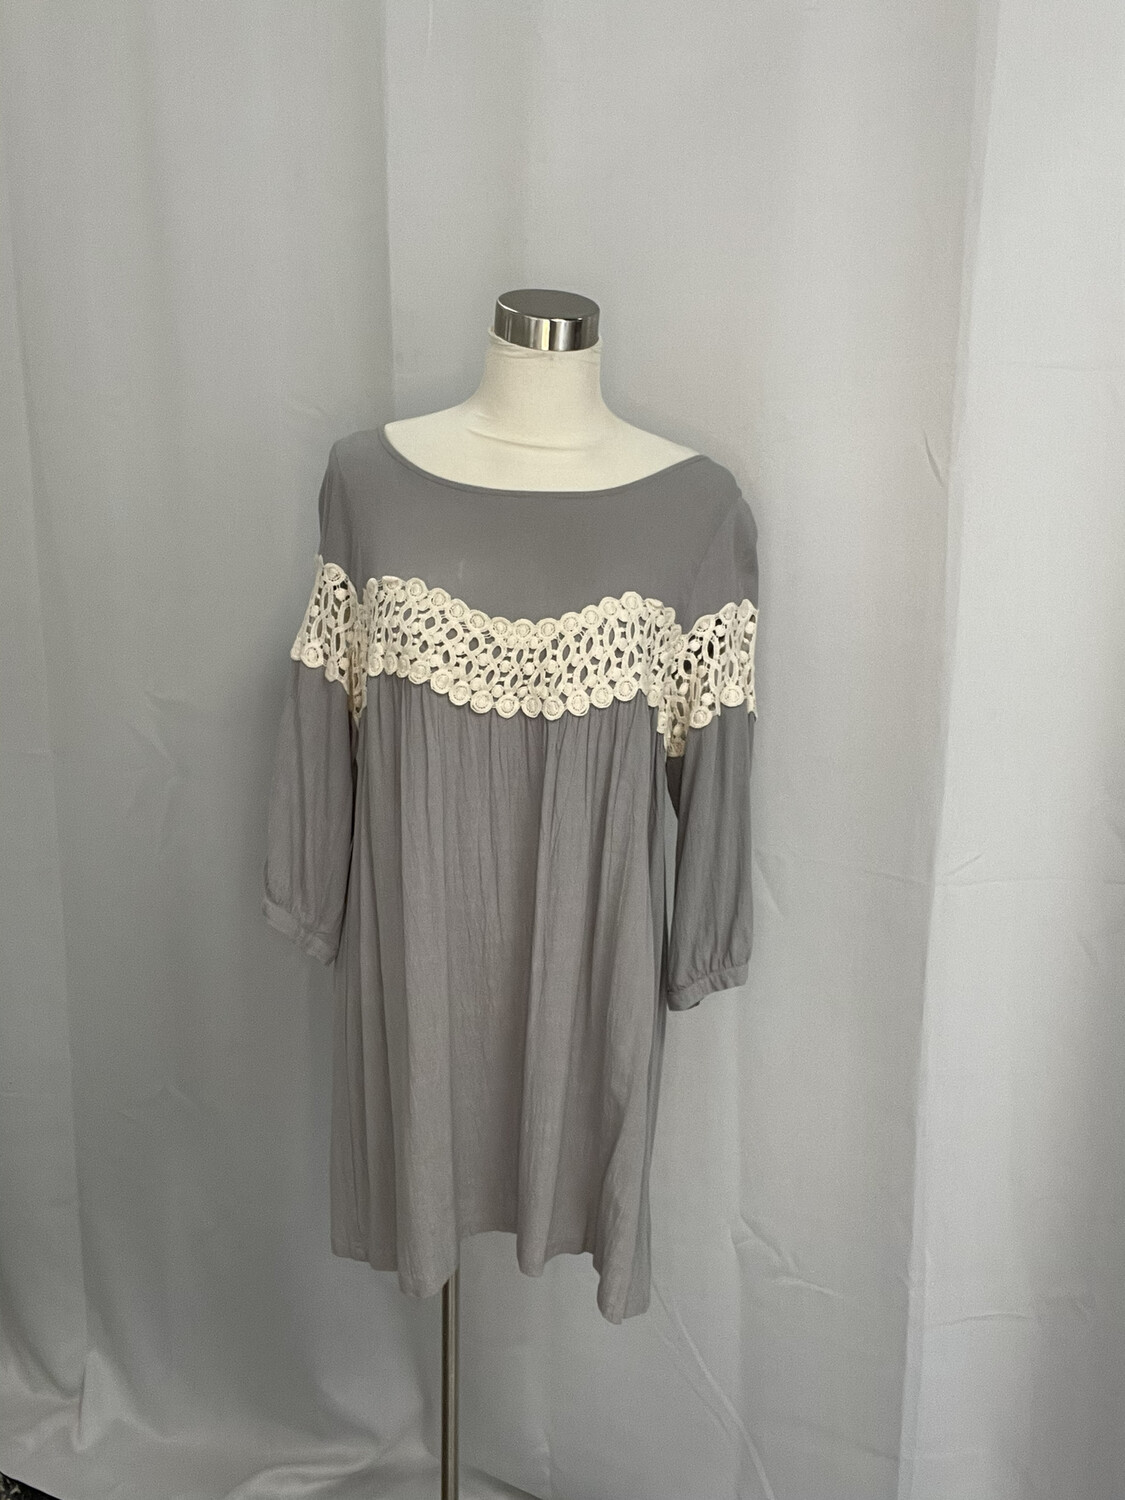 Kori America Gray Dress with Cream Lace Accent - S